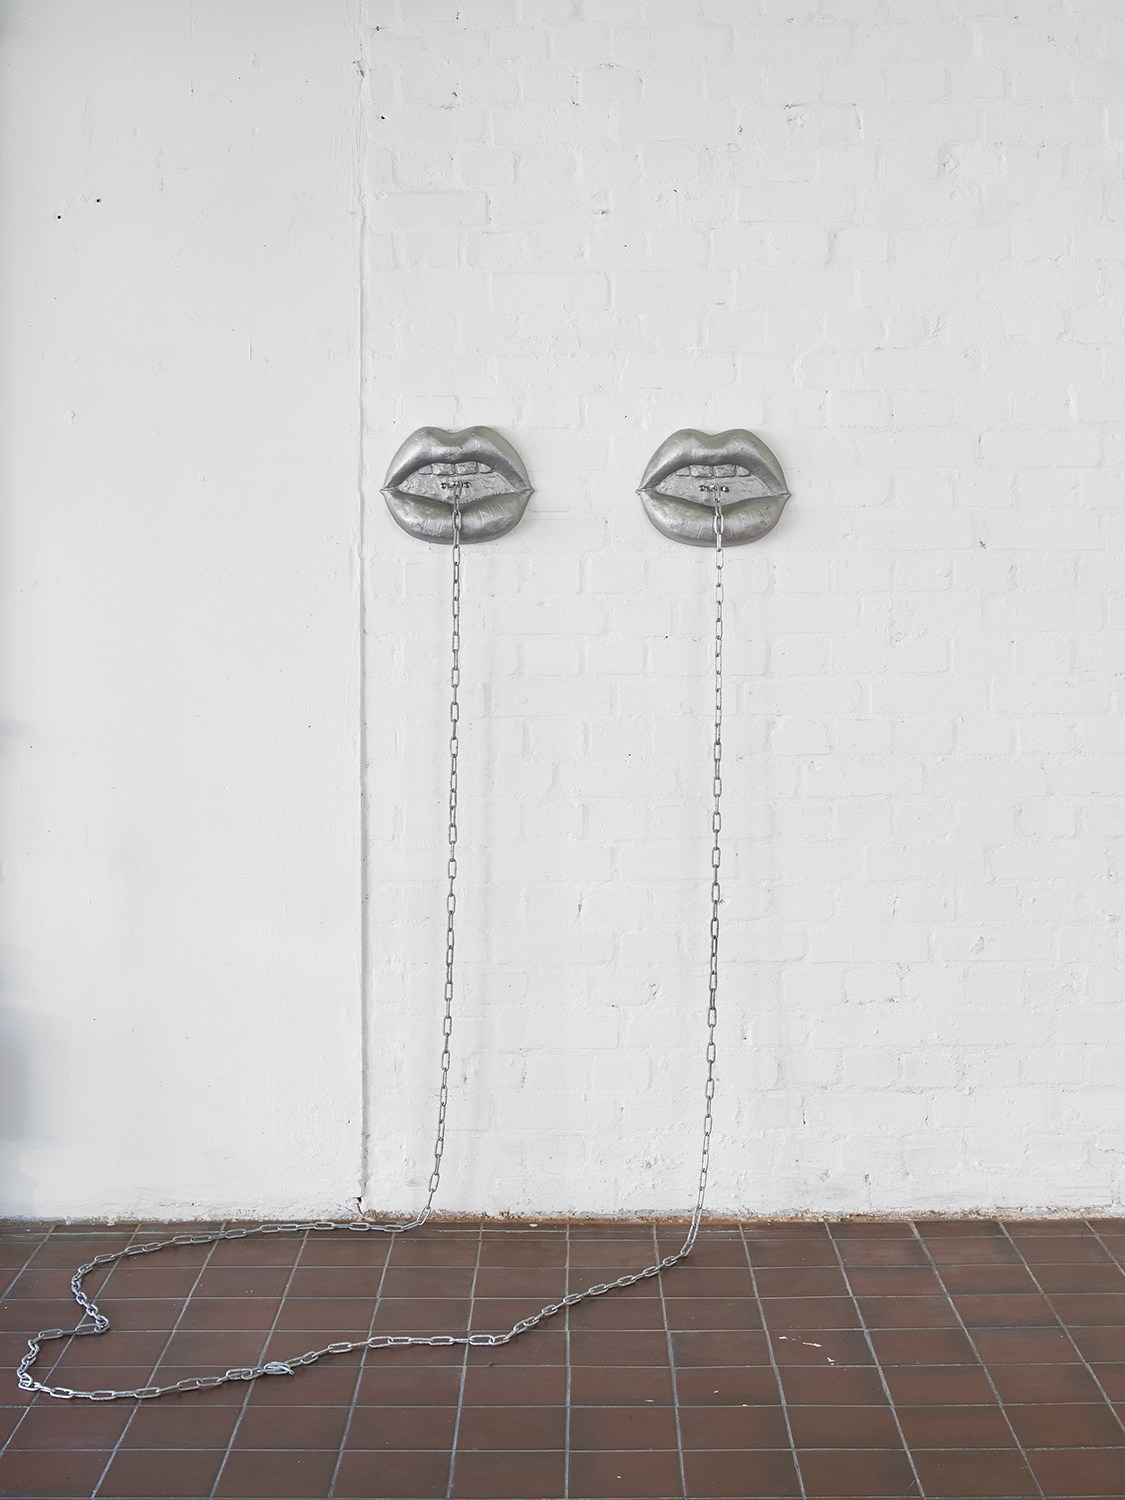 Liz Craft,  Between You & Me (I - V) , 2018, Aluminum, steel chain, Pair of mouths: 28 x 21.5 x 5.7 cm / 11 x 8.5 x 2.25 in each, Chain dimensions variable